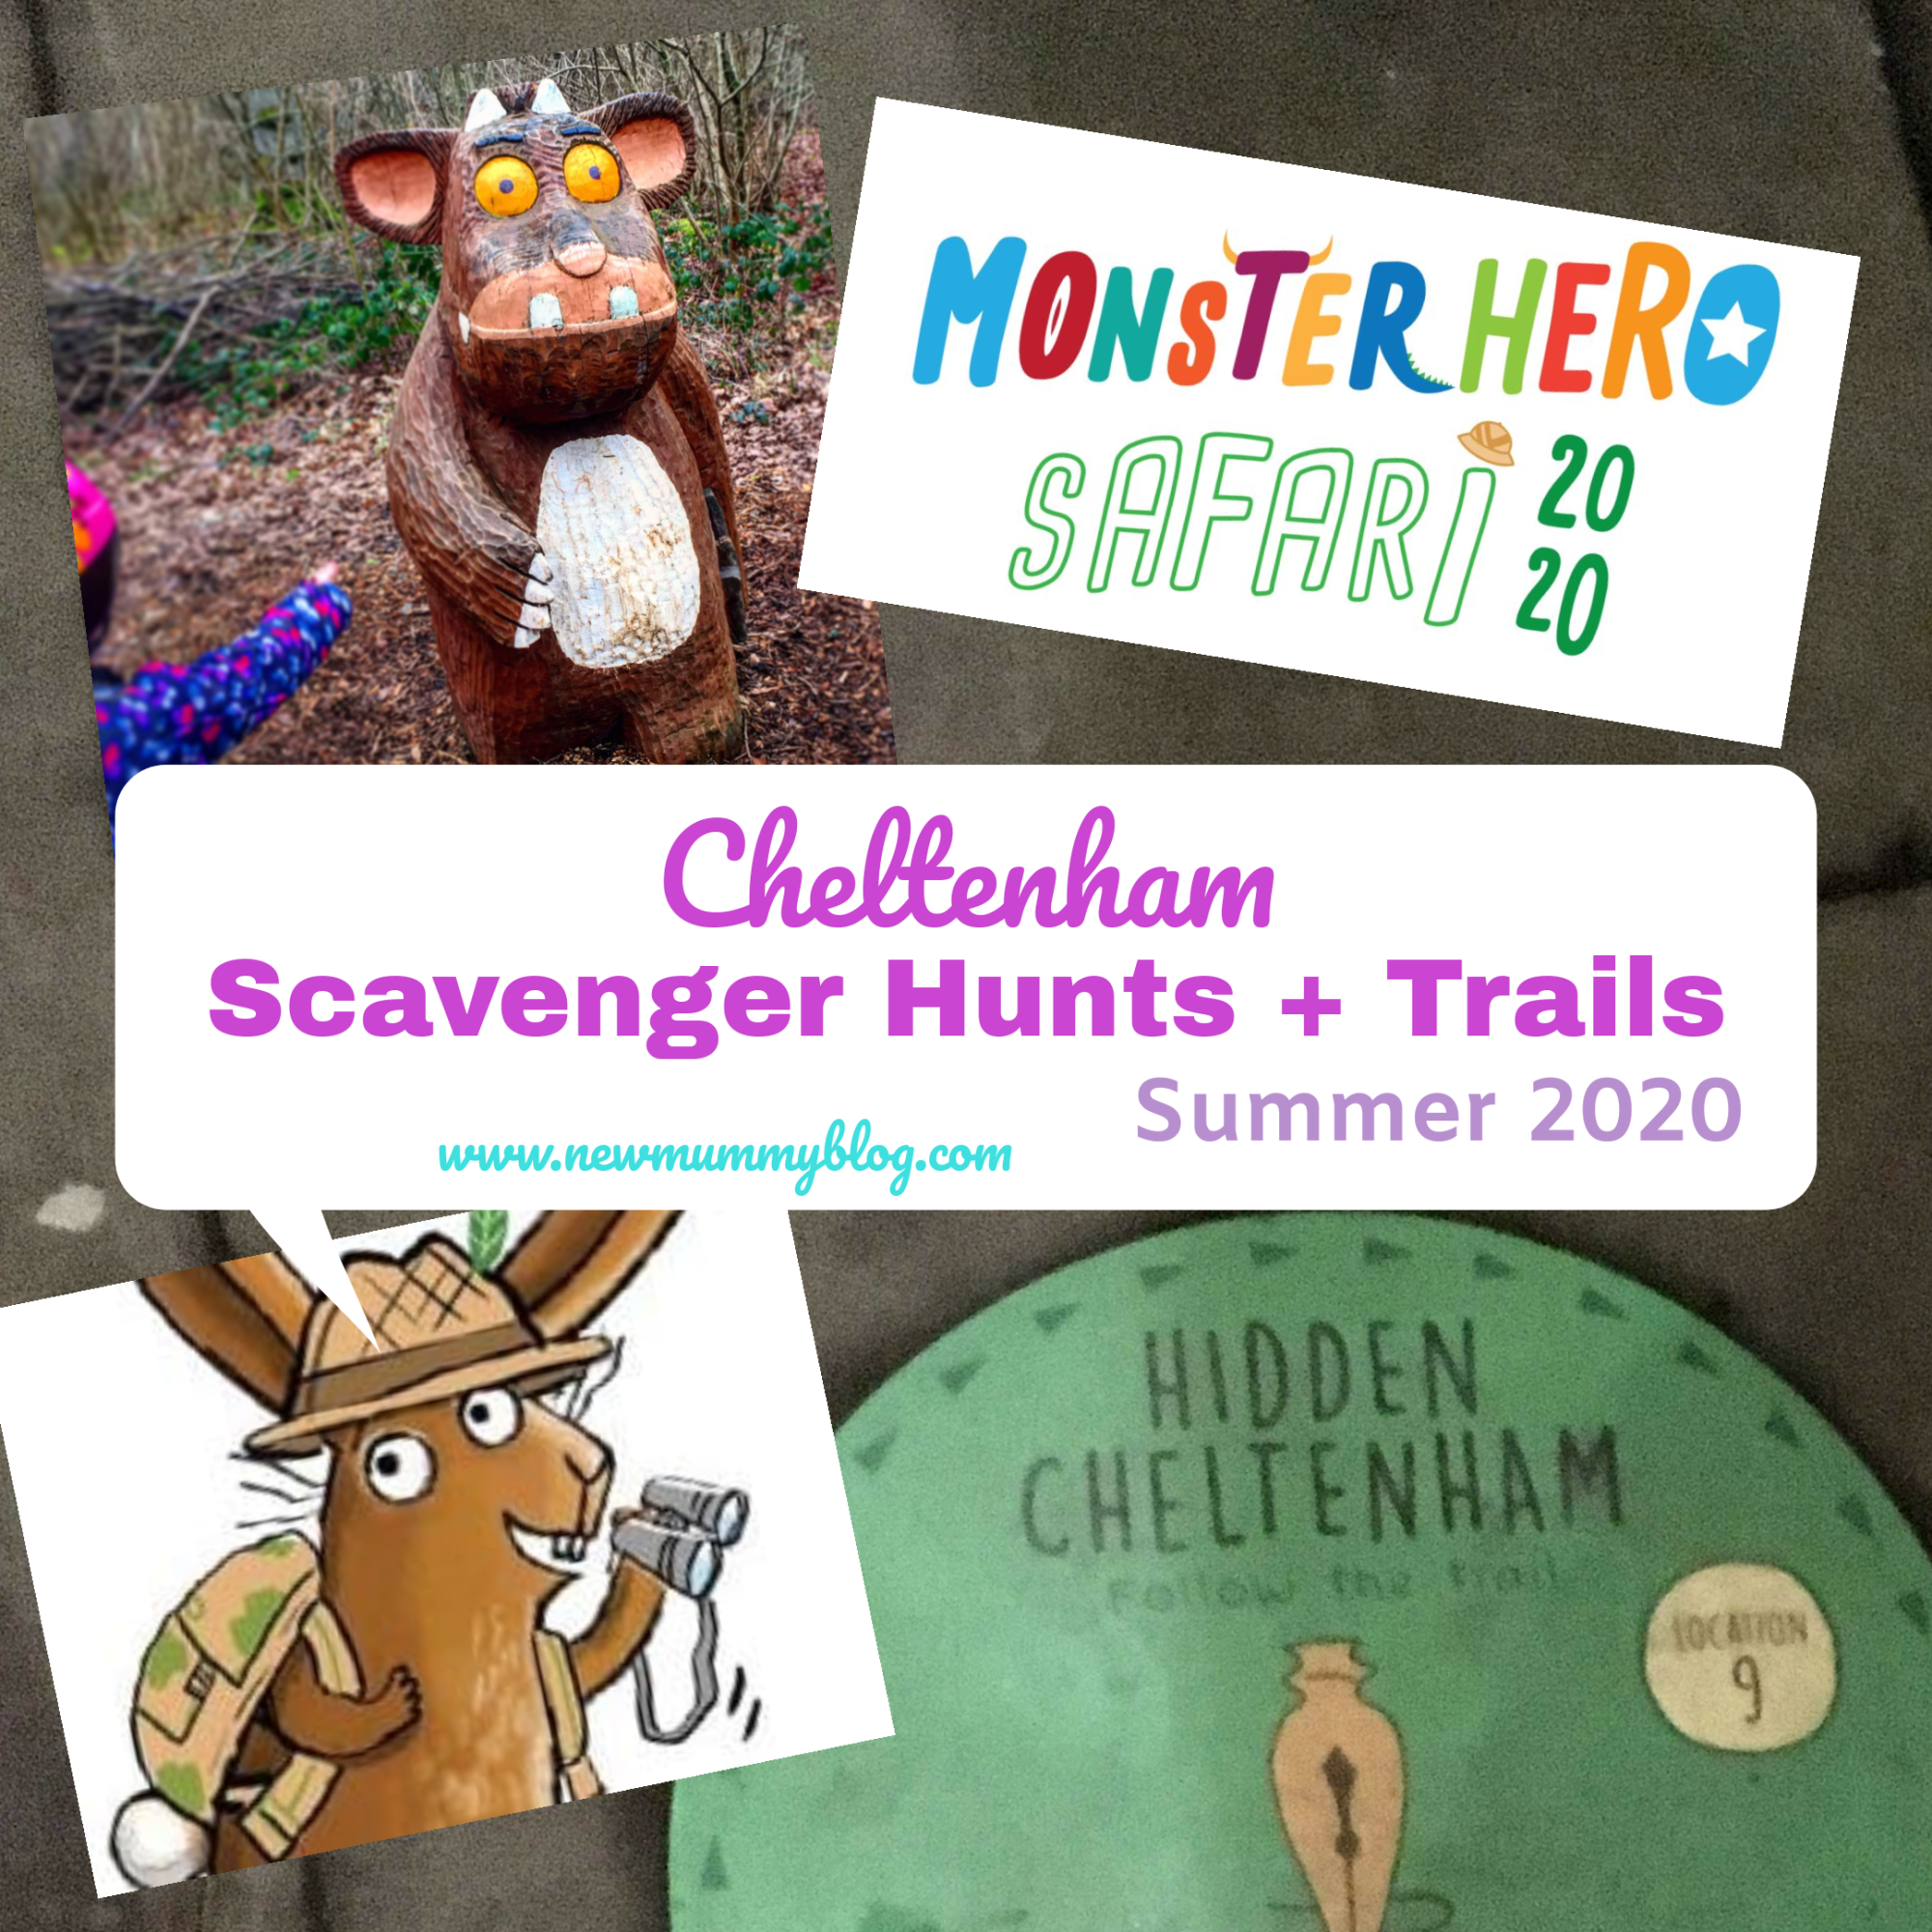 Cheltenham scavenger hunts and trails - days out Gloucestershire Summer 2020 post-lockdown